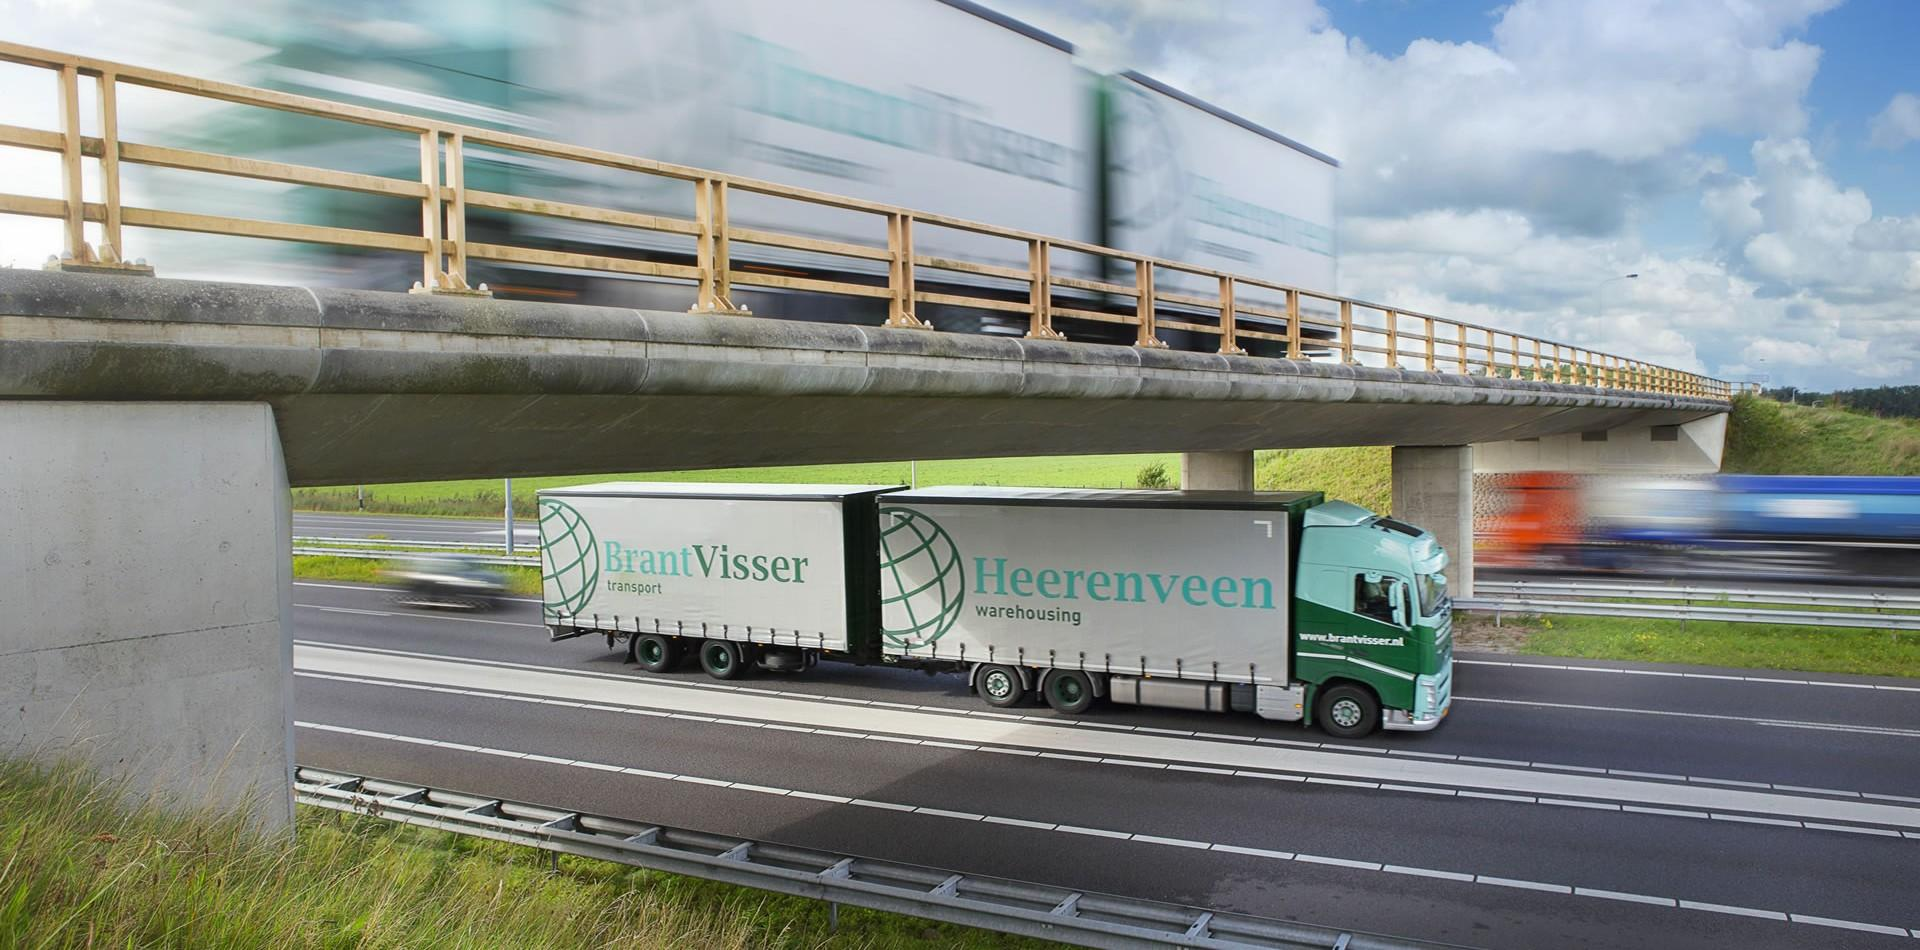 Transport en warehousing tot in de puntjes verzorgd